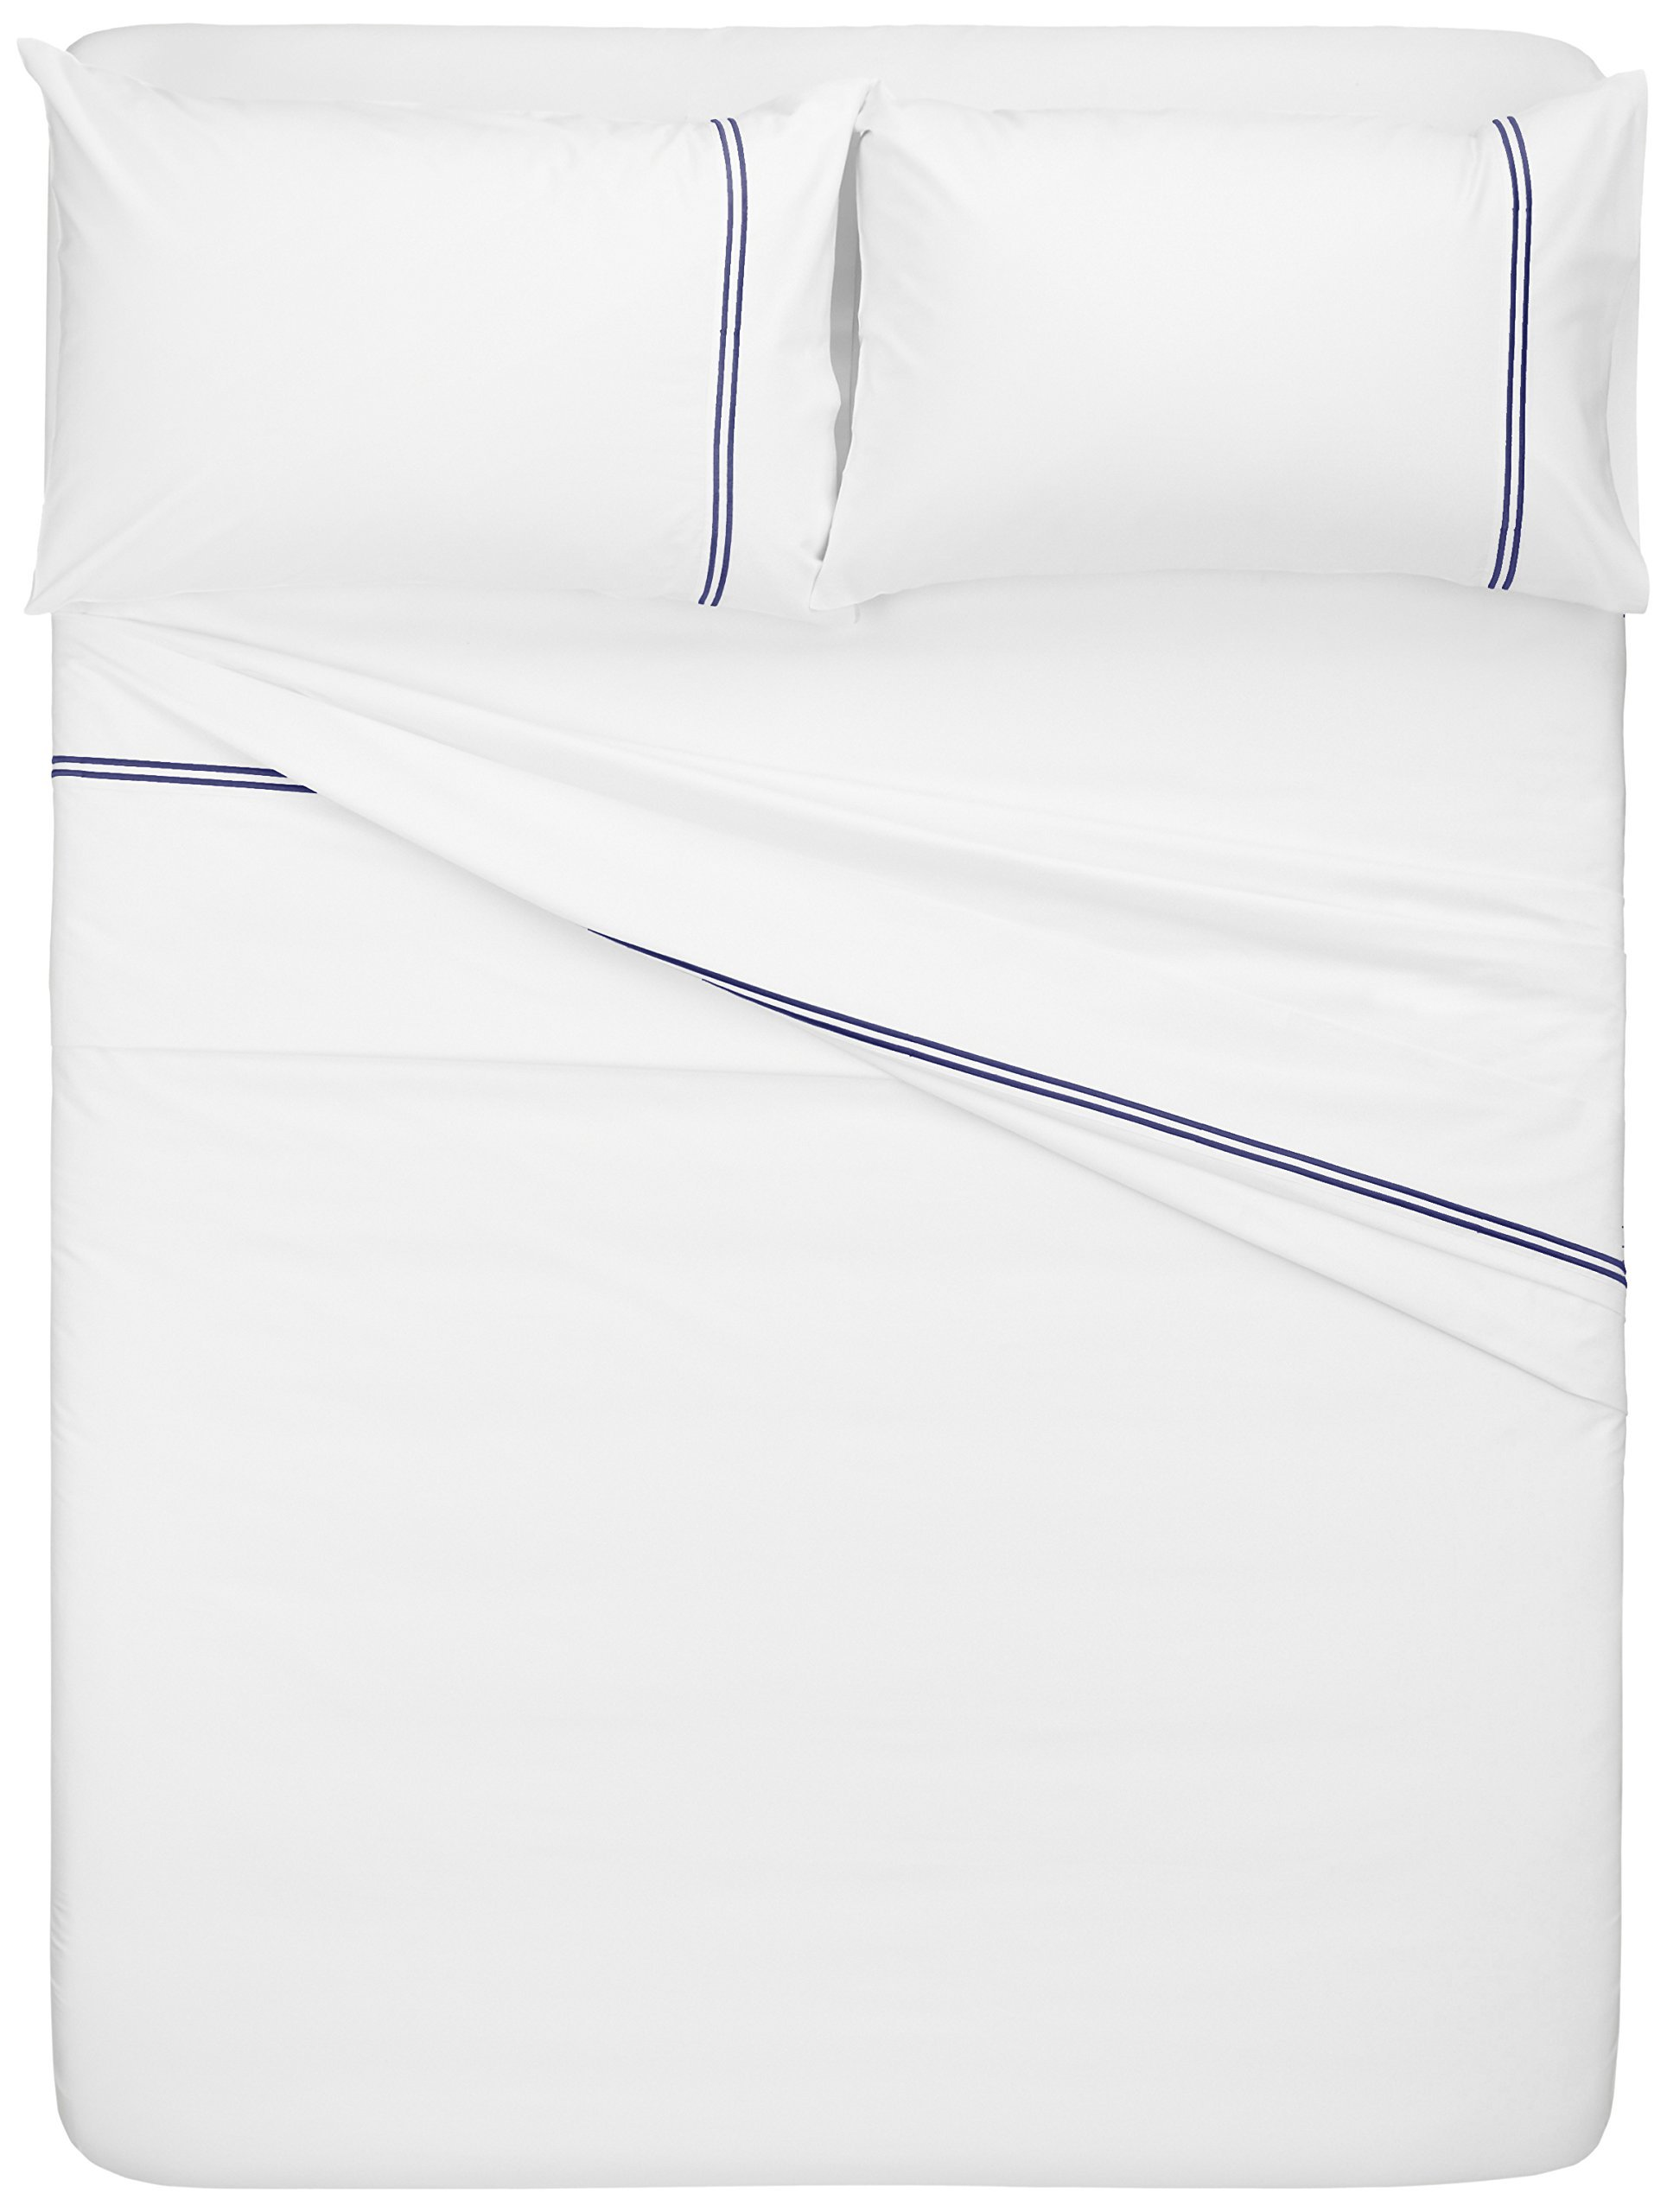 Pinzon 400-Thread-Count Egyptian Cotton Sateen Hotel Stitch Sheet Set - Queen, Navy by Pinzon by Amazon (Image #4)